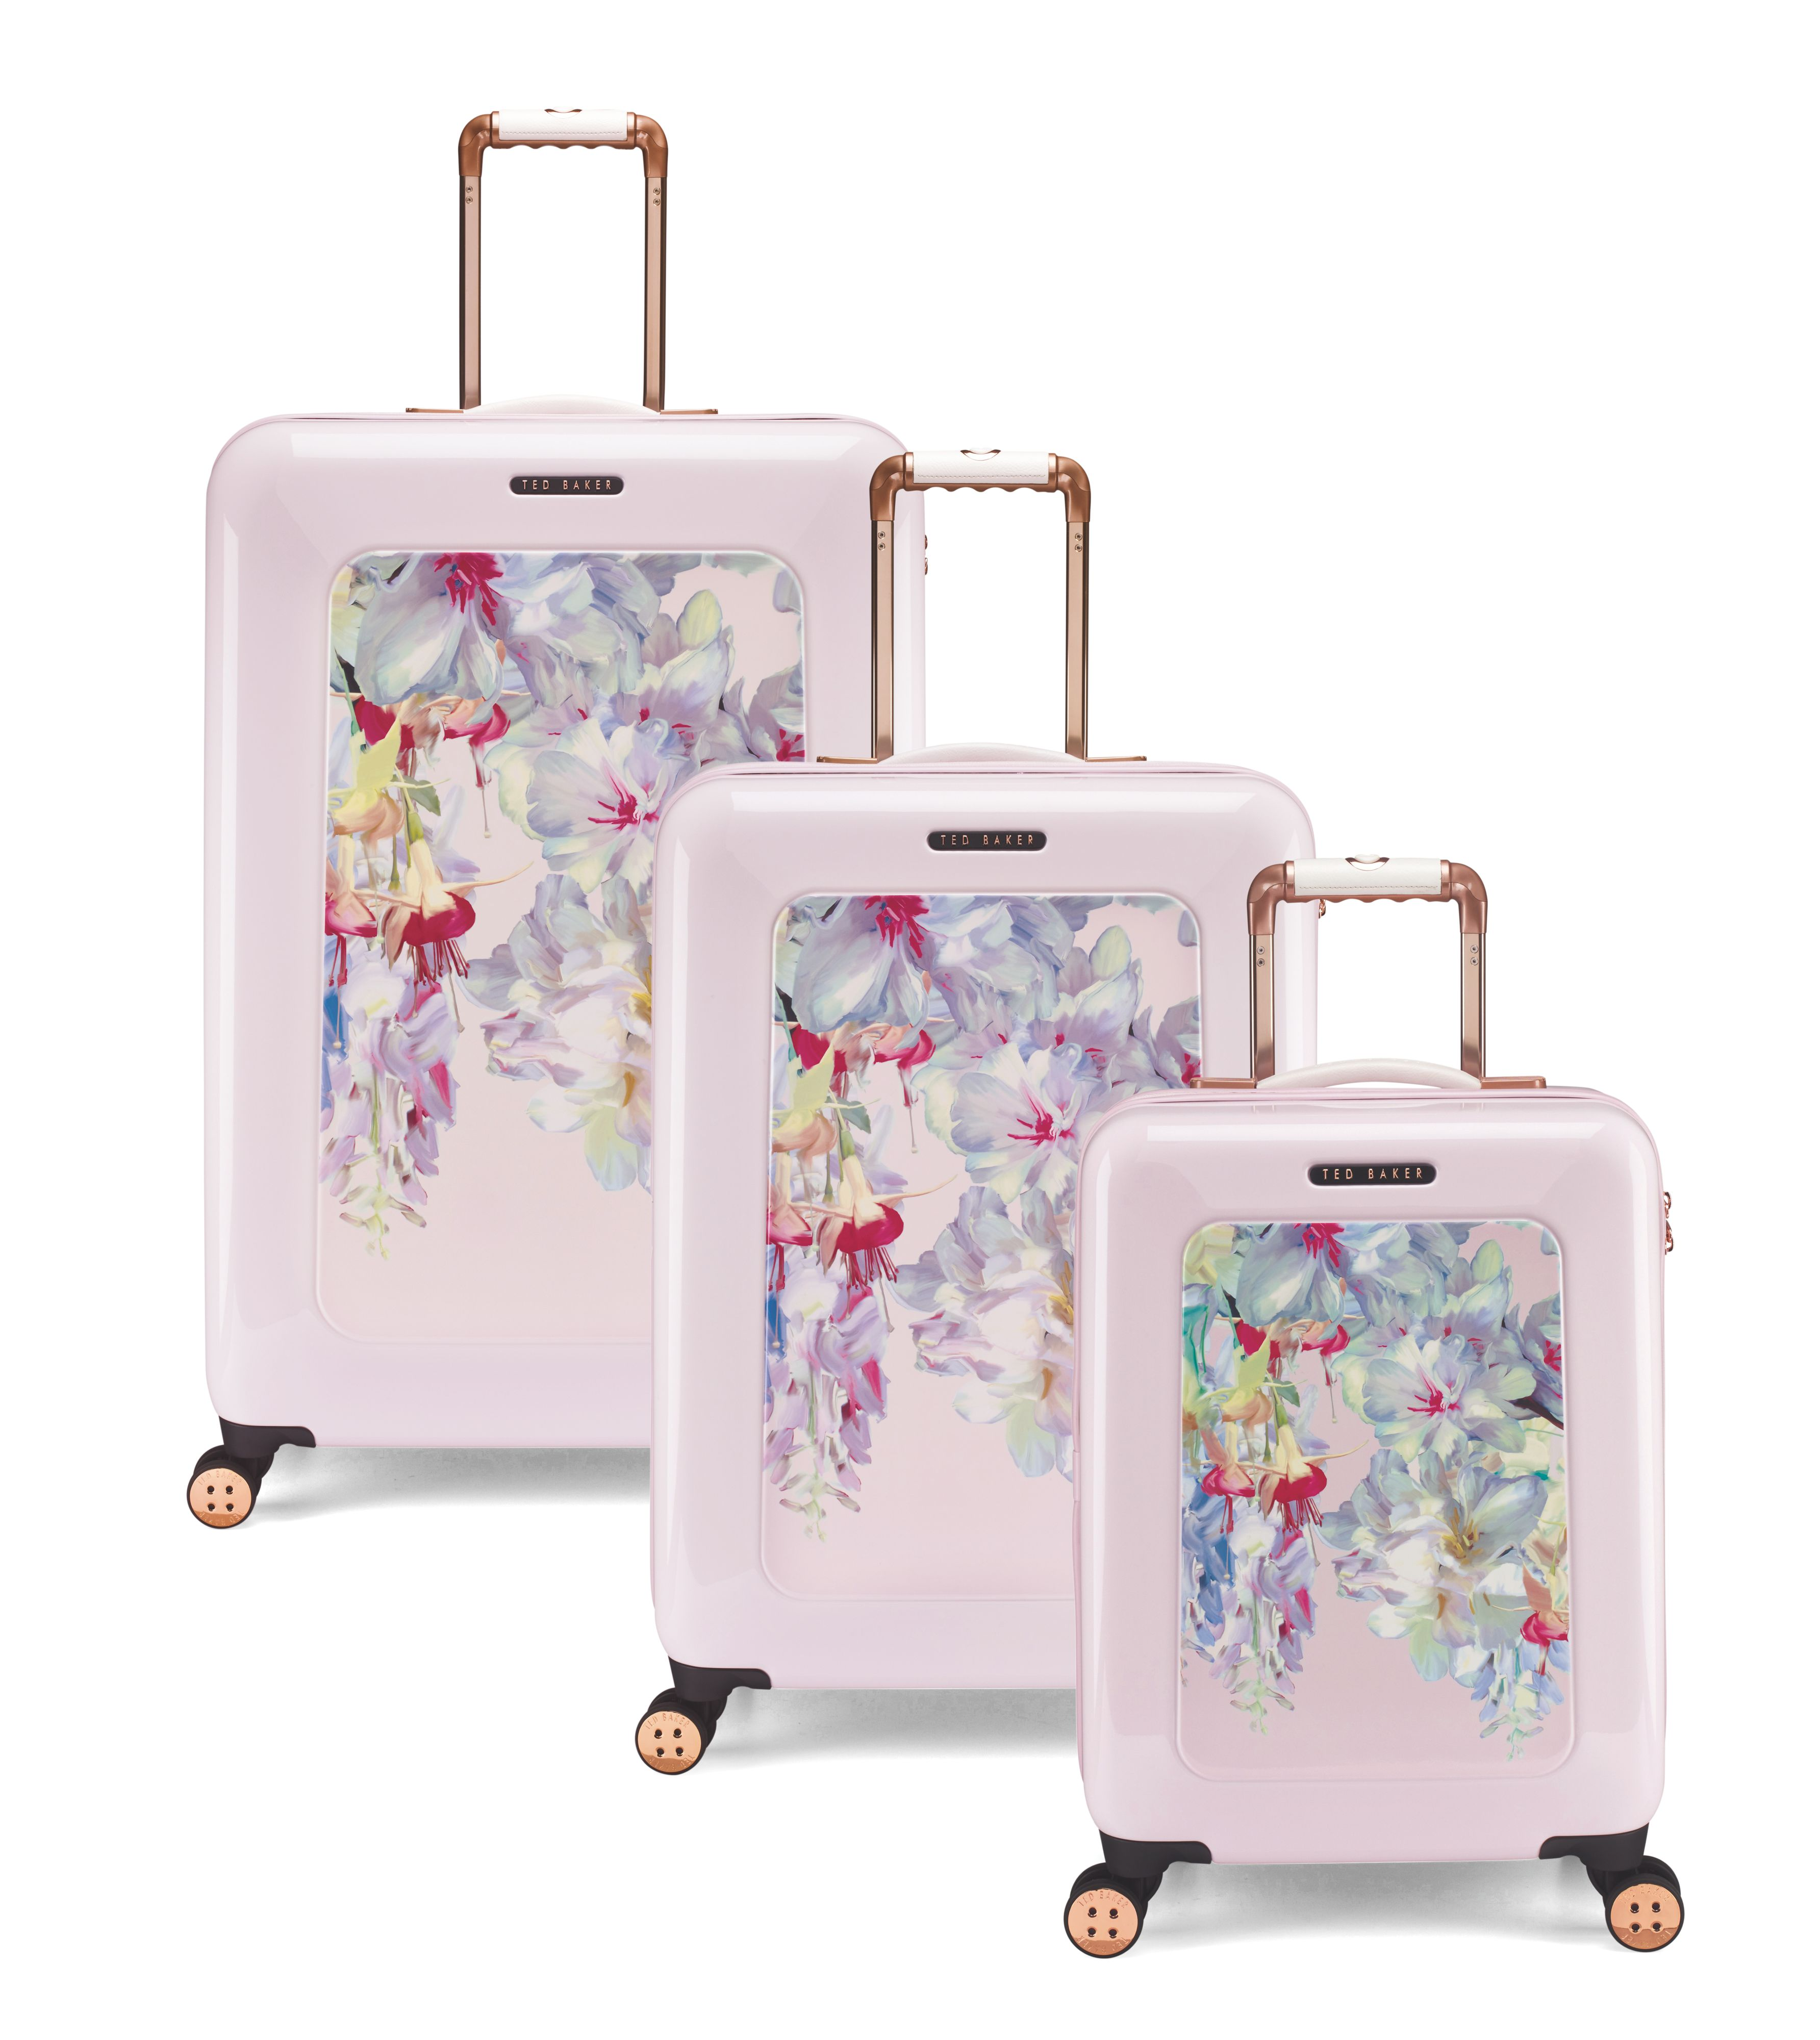 footwear presenting dirt cheap Ted Baker Suitcases - Home Decorating Ideas & Interior Design